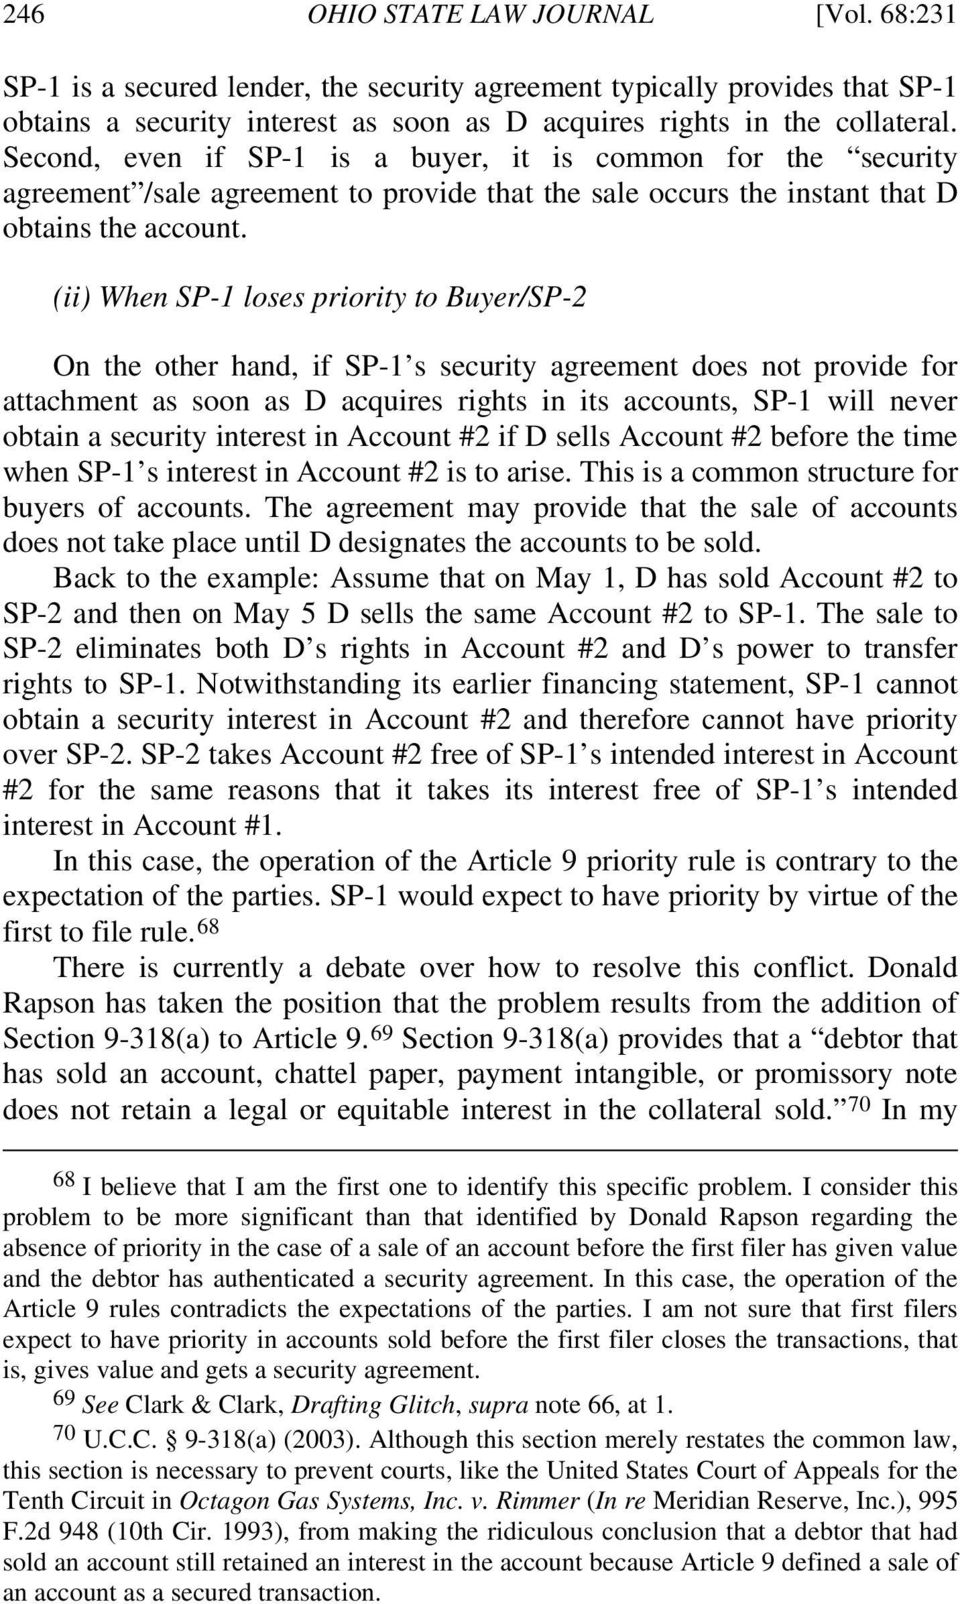 (ii) When SP-1 loses priority to Buyer/SP-2 On the other hand, if SP-1 s security agreement does not provide for attachment as soon as D acquires rights in its accounts, SP-1 will never obtain a